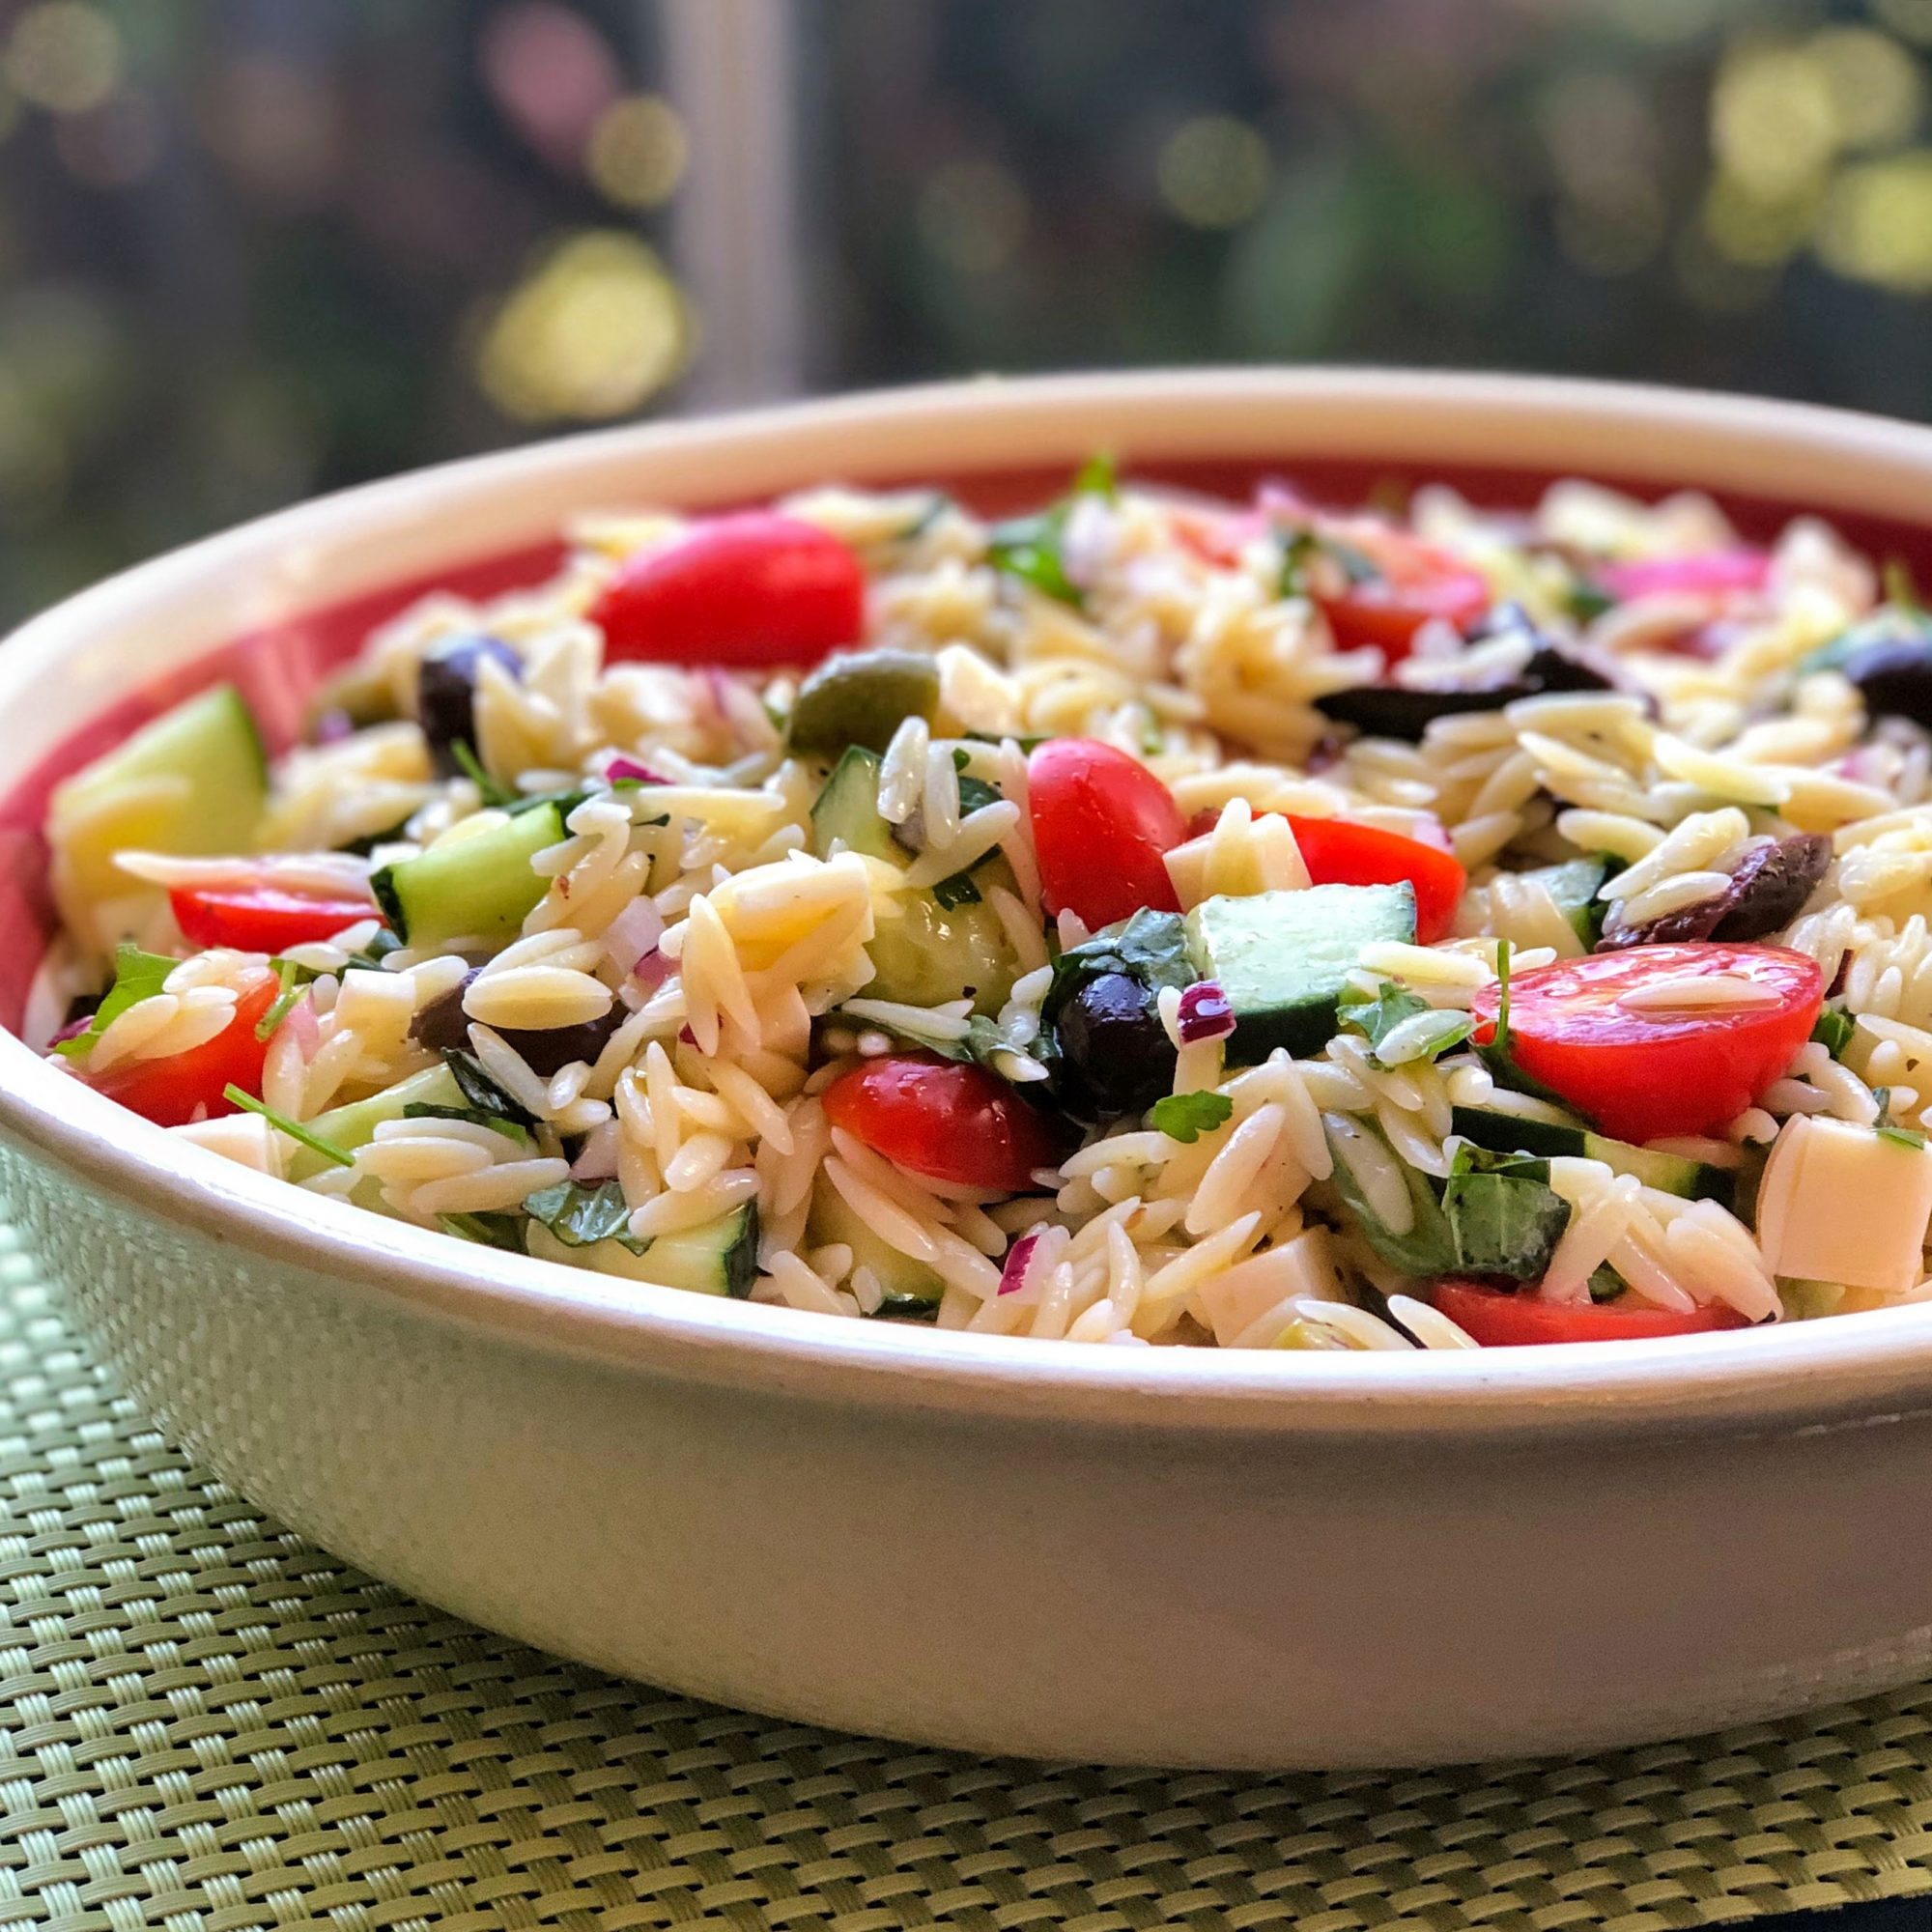 orzo salad with tomatoes, cucumbers, cheese cubes